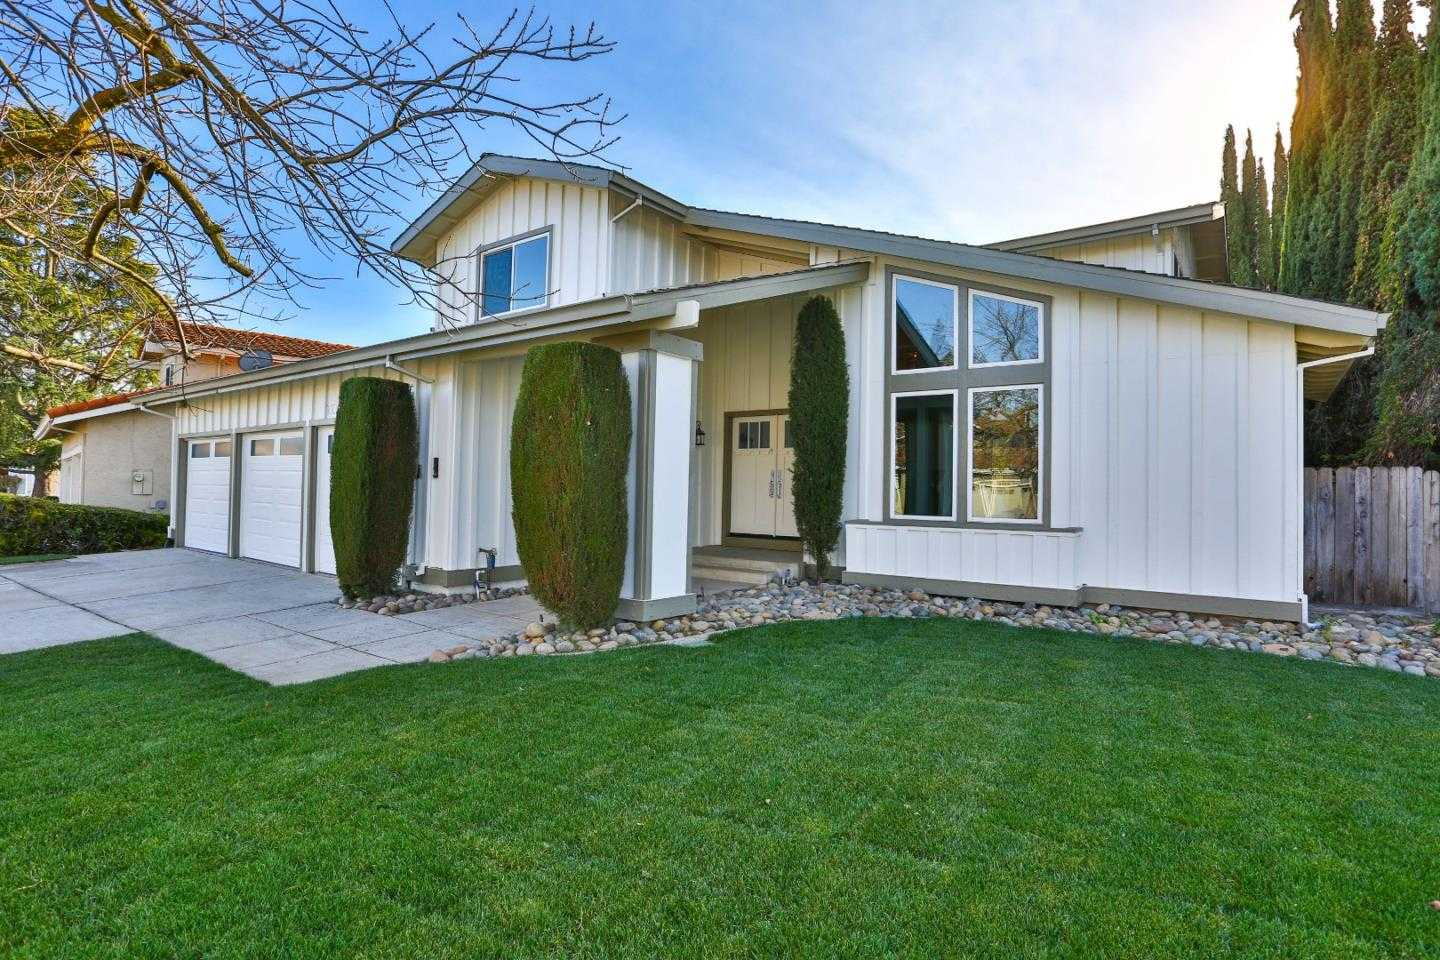 $1,898,000 - 4Br/3Ba -  for Sale in San Jose